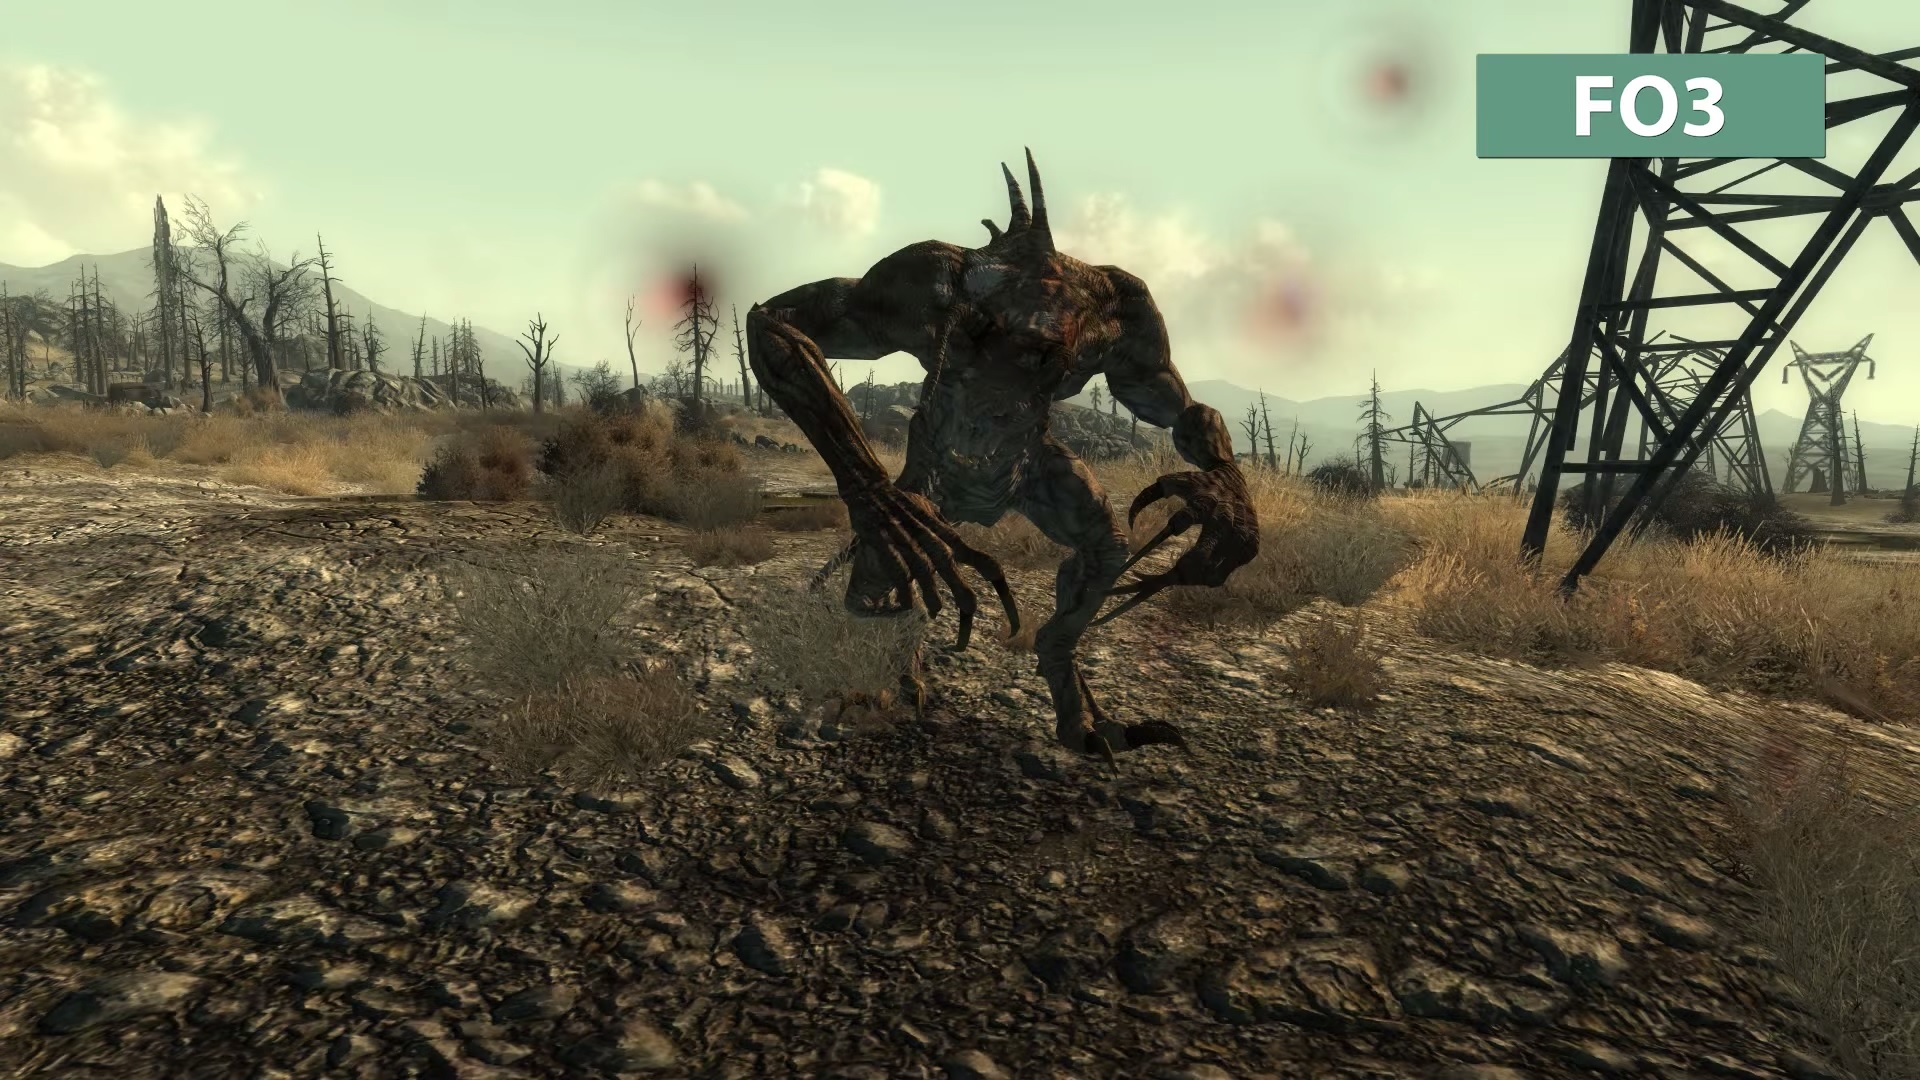 Fallout 3 Performs Better On Xbox One Through Backwards Compatibility